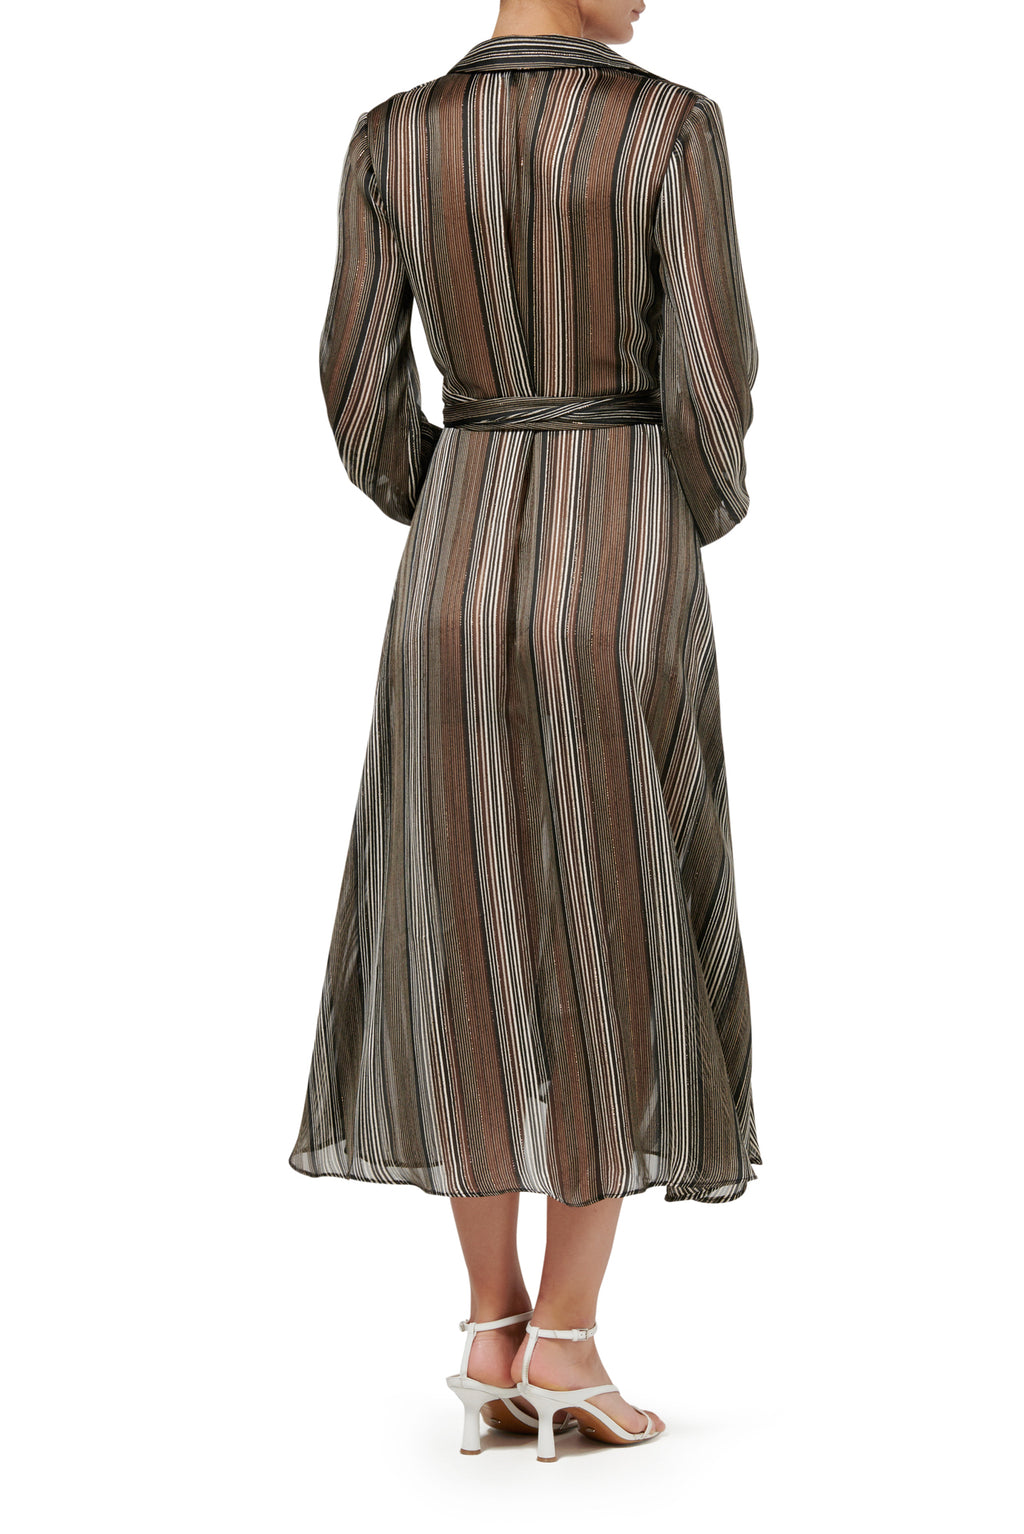 Calypso Shirt Dress - Stripe